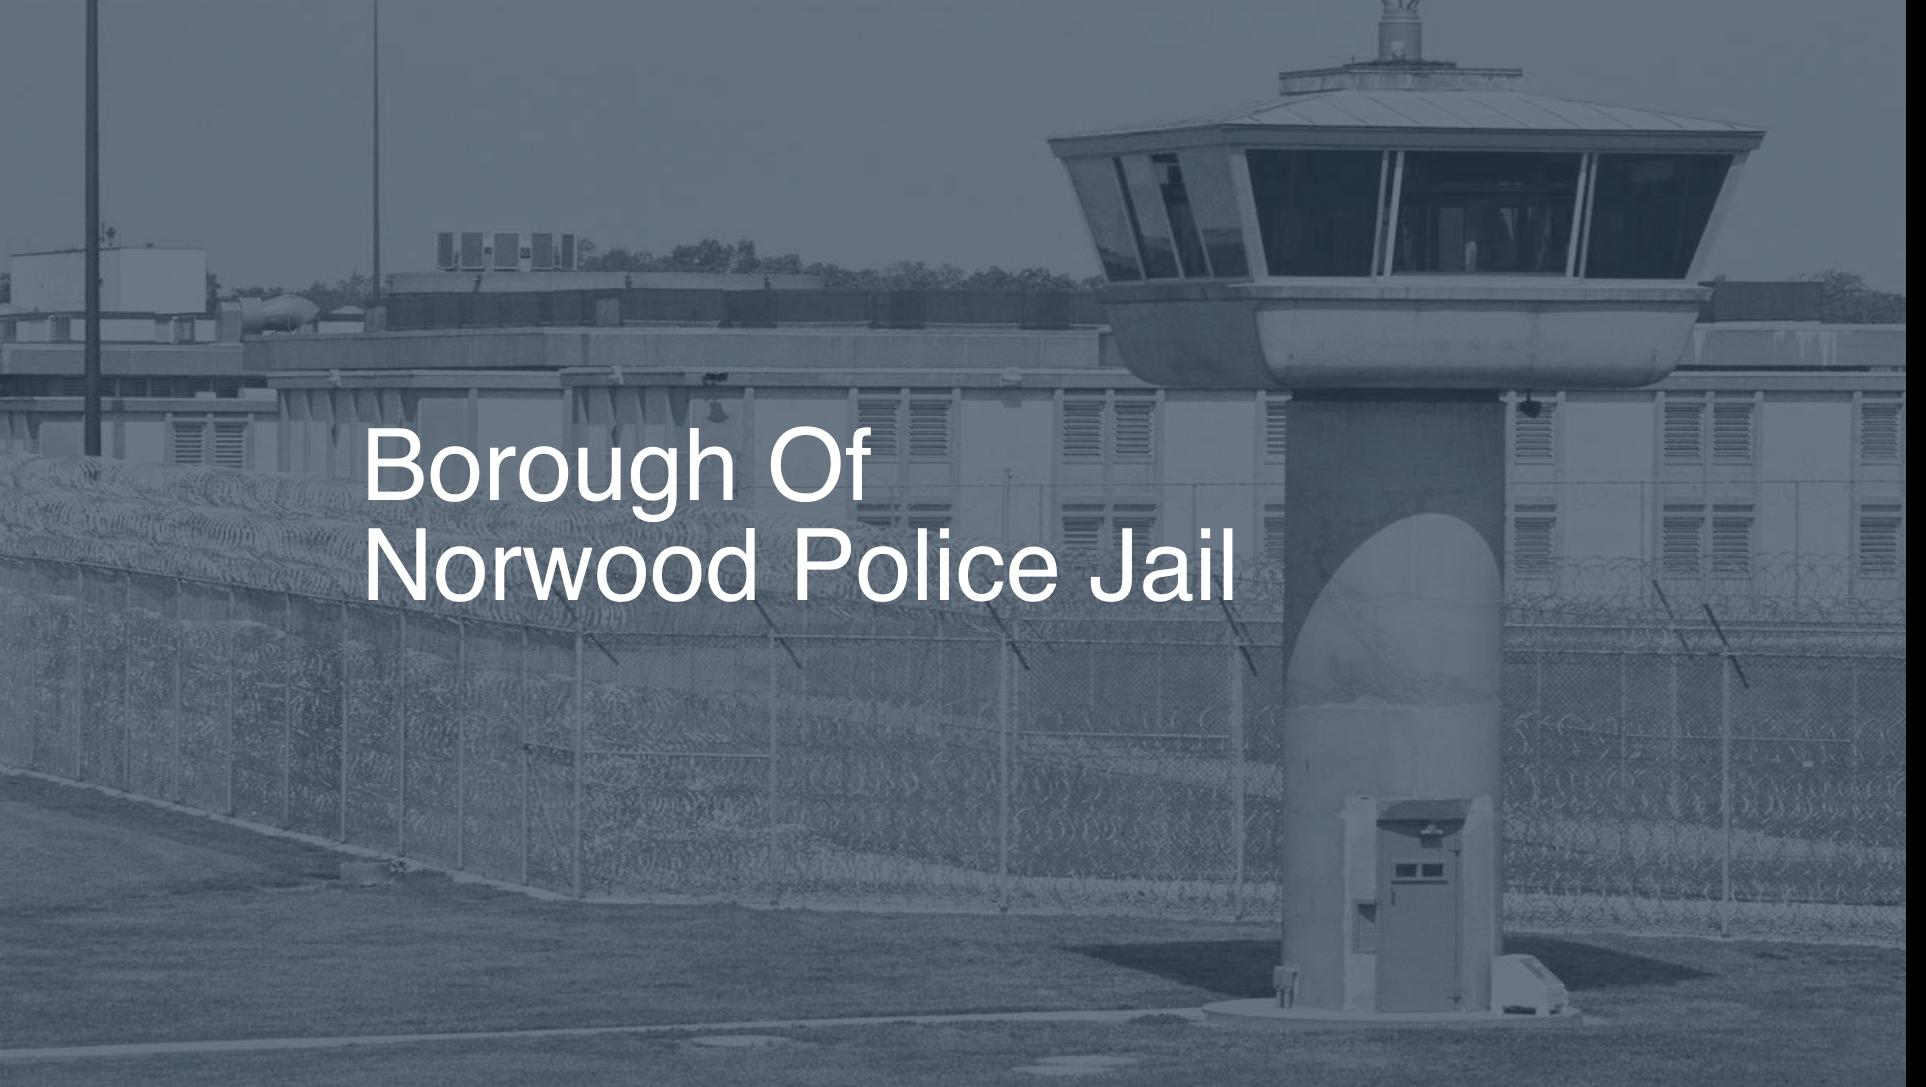 Borough of Norwood Police Jail correctional facility picture